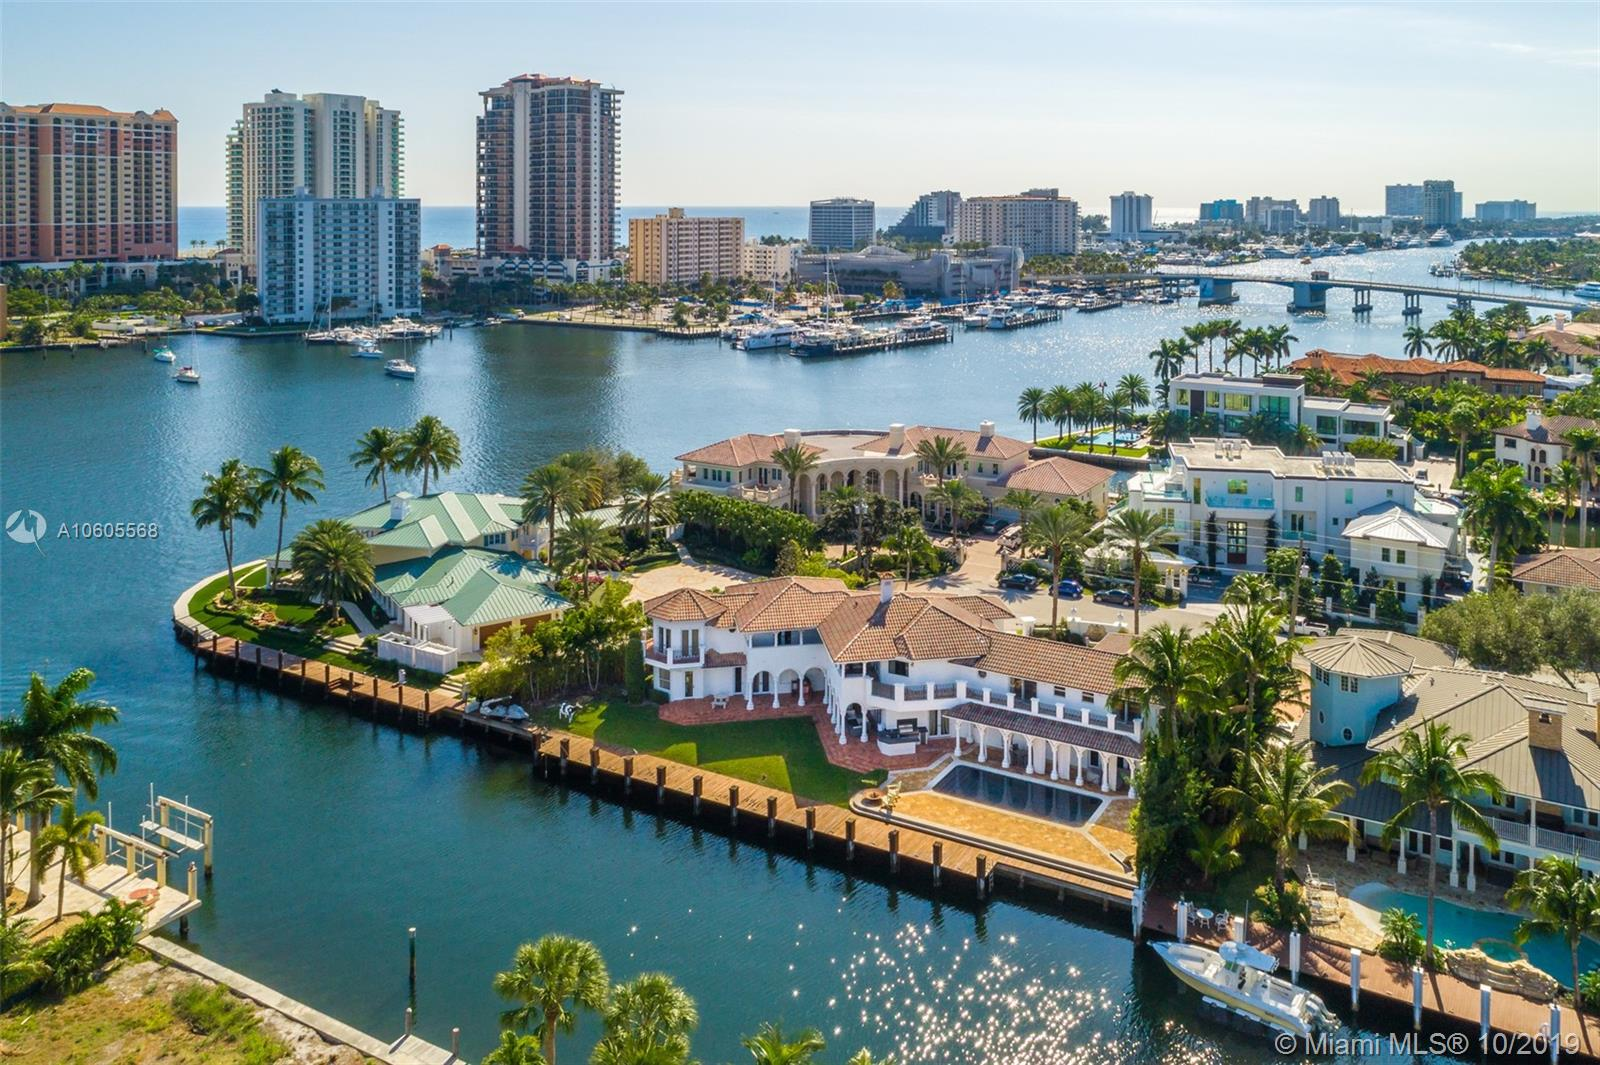 Property for sale at 3 Pelican Dr, Fort Lauderdale,  Florida 33301